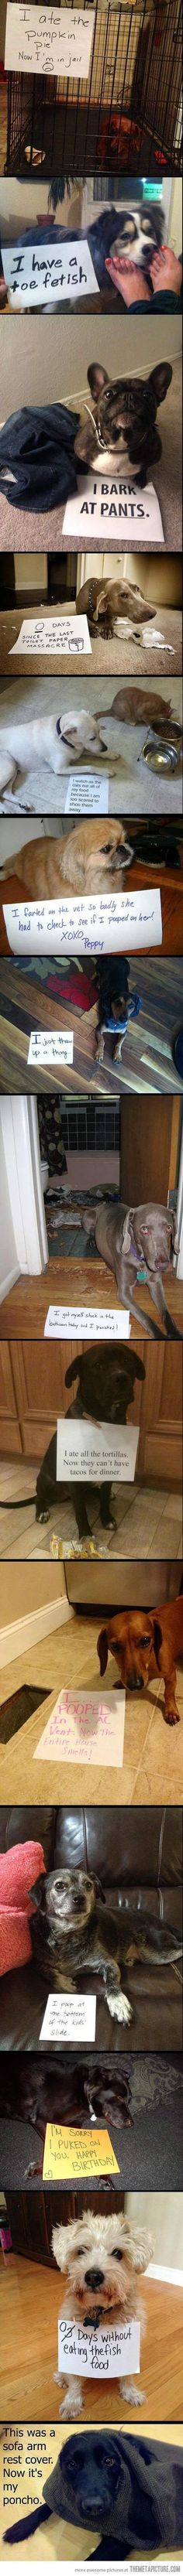 The Best of Dog Shaming - Imgur